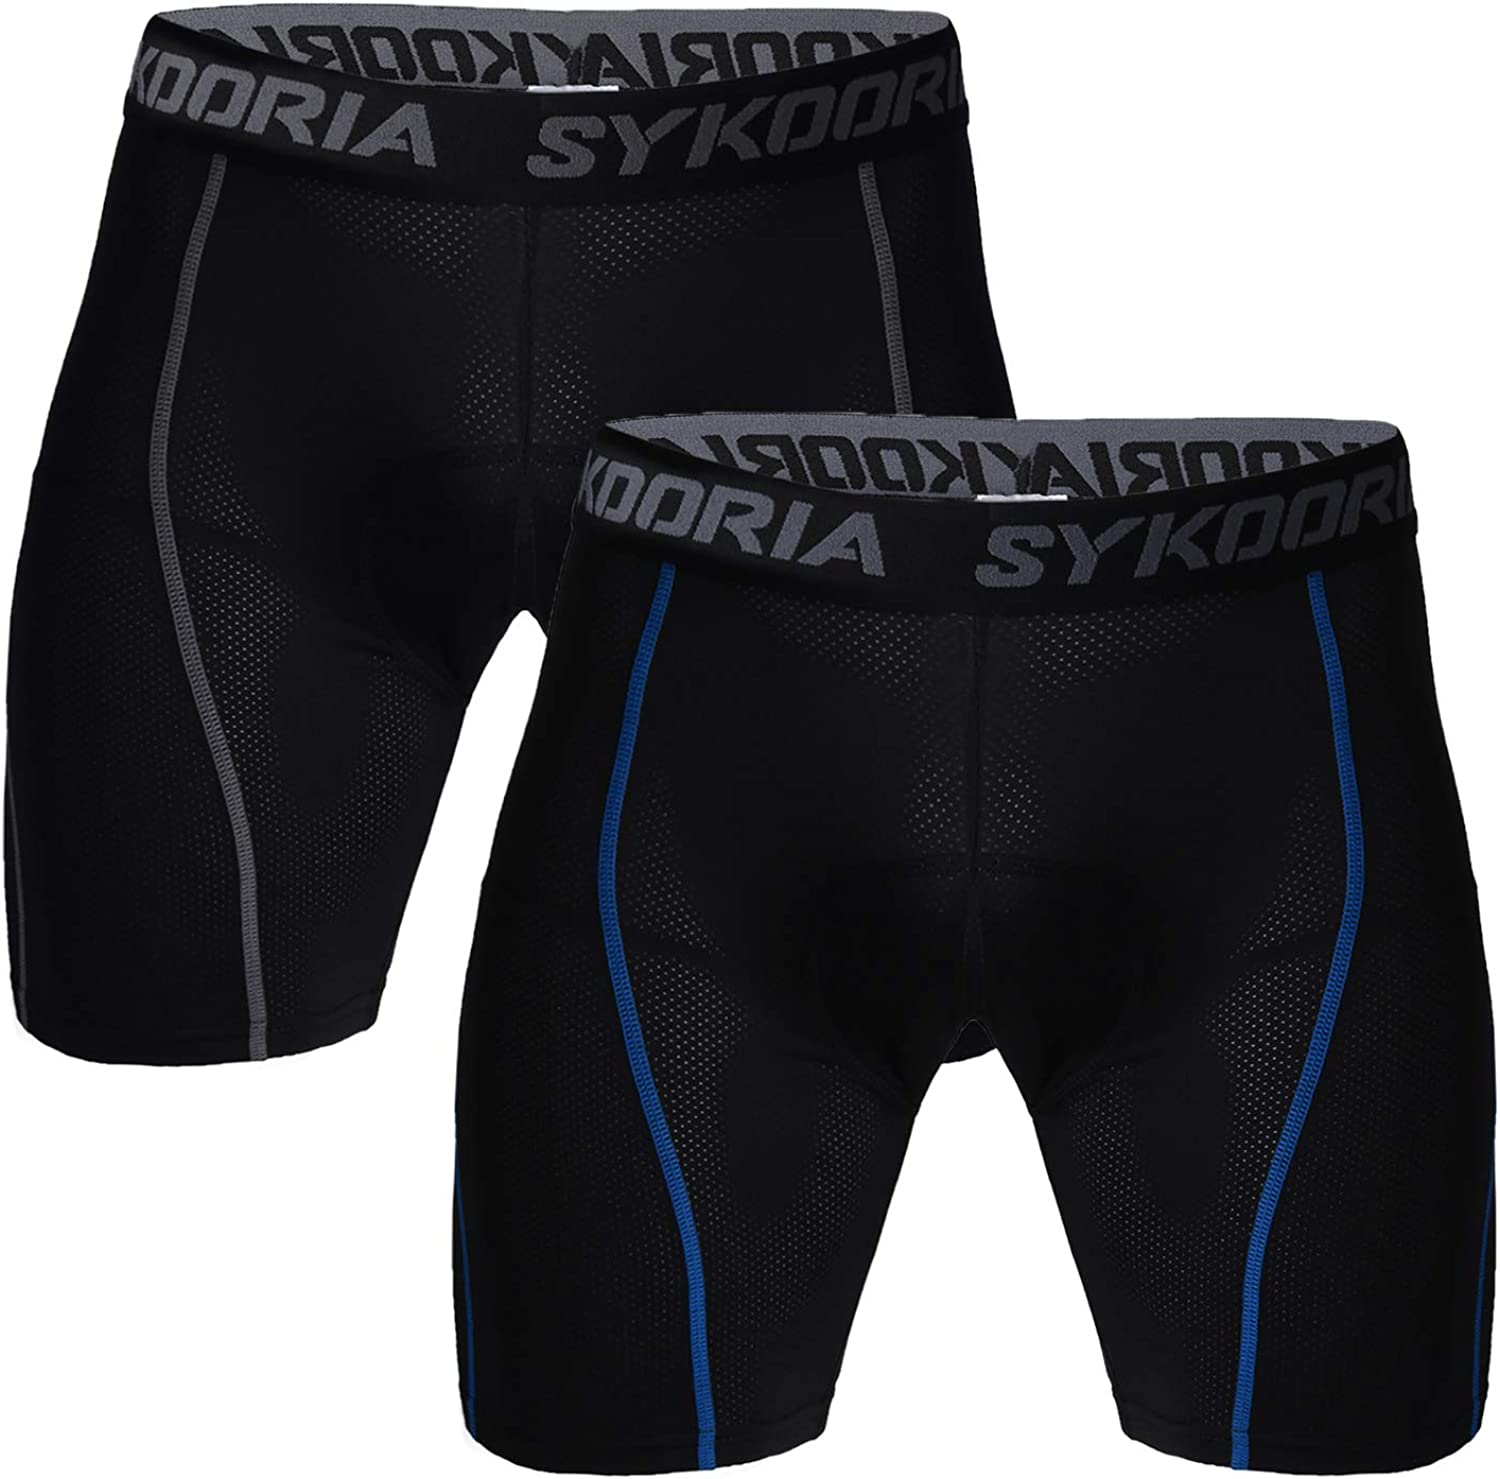 Sykooria 2 Pack MTB Cycling Shorts Mens 3D Padded Cycling Pants Breathable Bicycle Wear